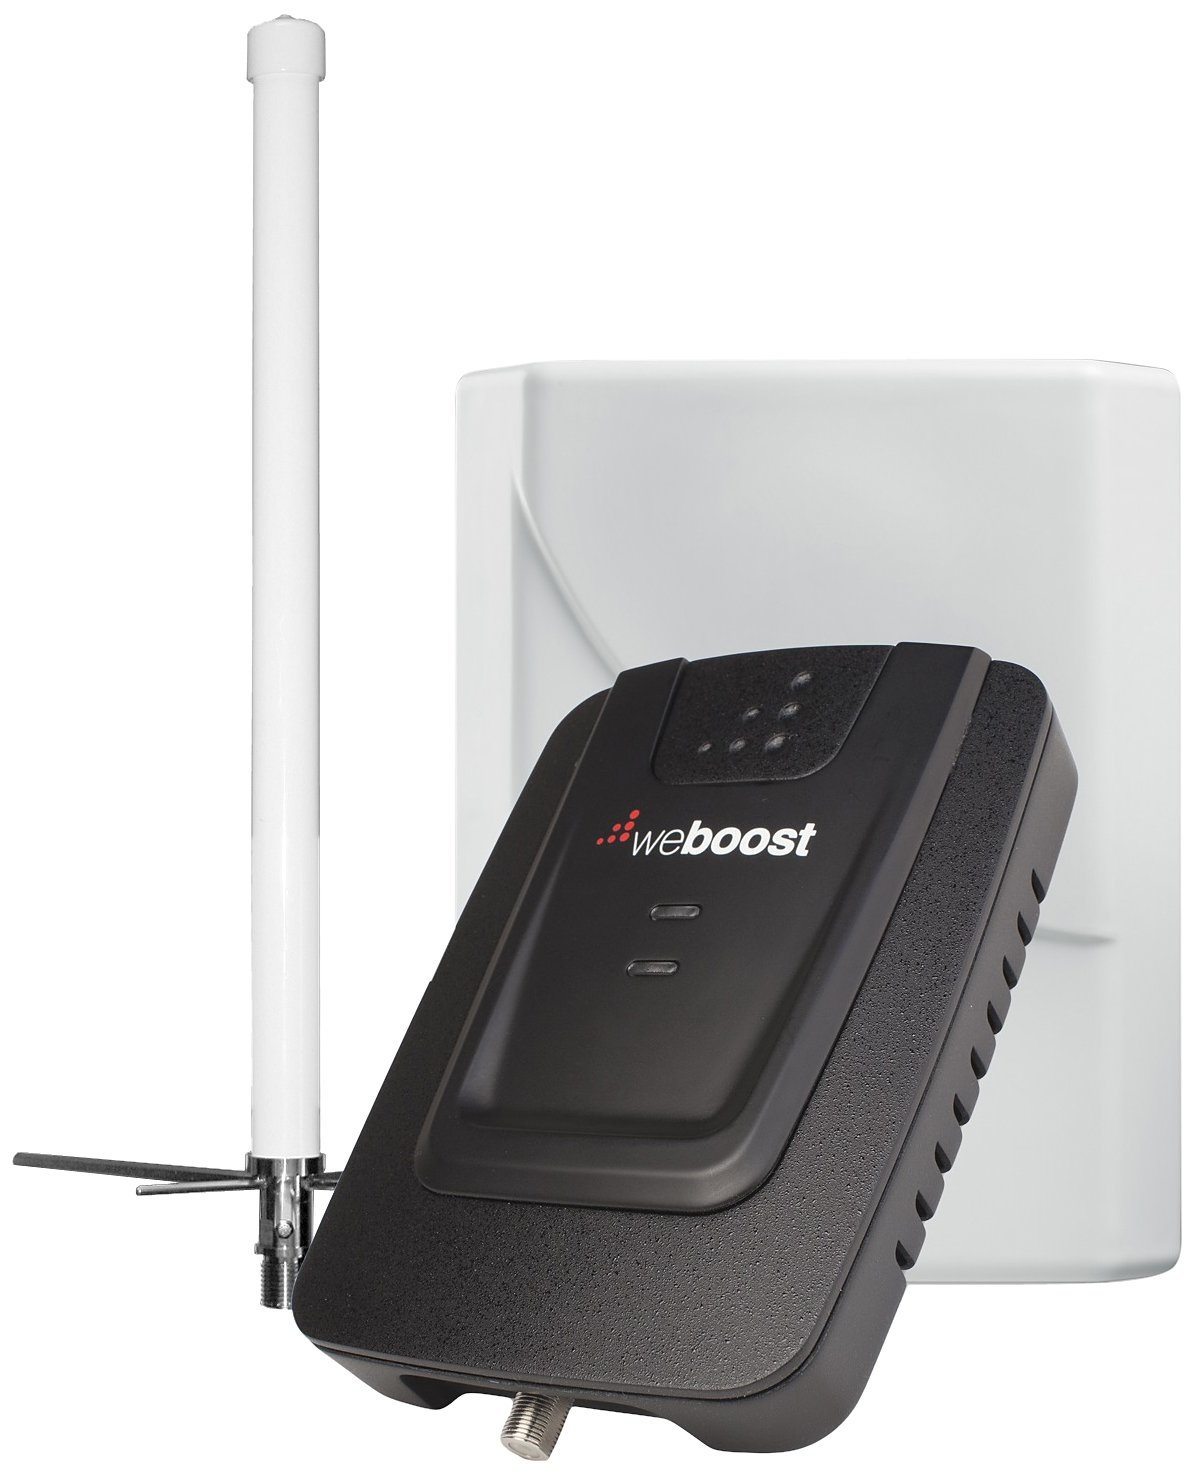 weBoost Connect 3G Omni Cell Phone Signal Booster for Home and Office – Enhance Your Signal up to 32x. Can Cover up to 5000 sq ft or Medium Home. For Multiple Devices and Users. by weBoost